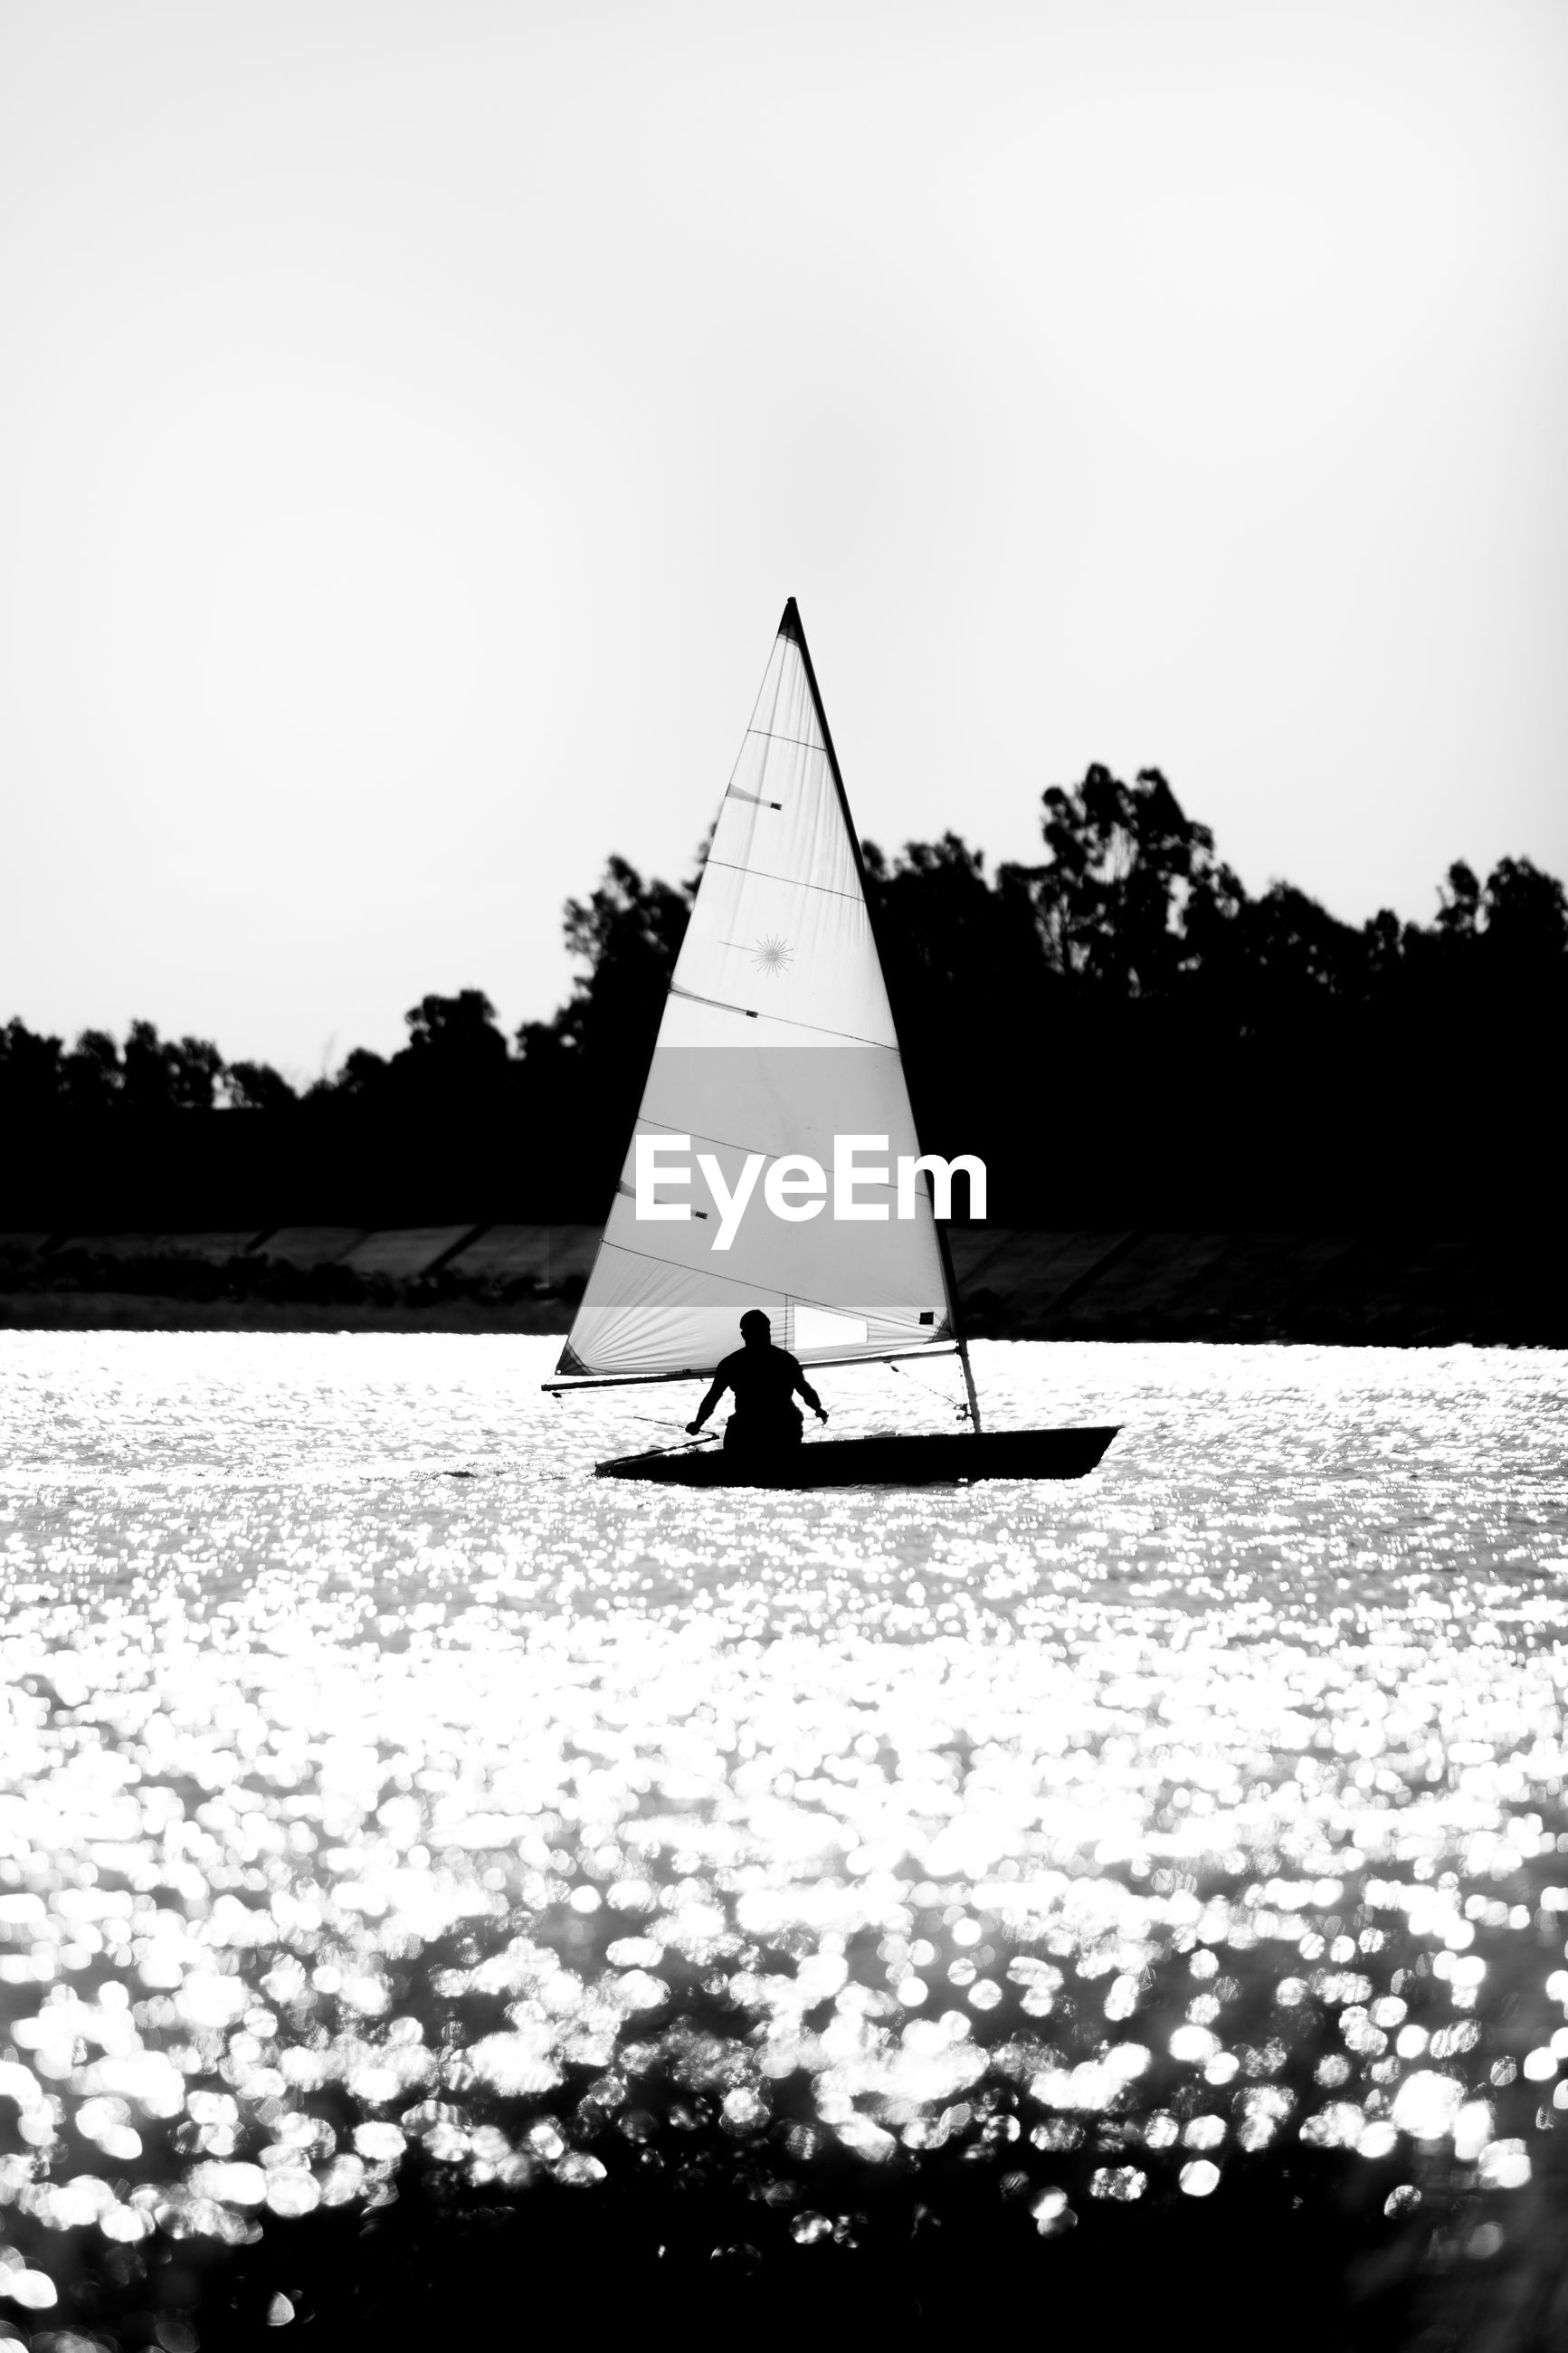 Man in sailboat on lake against clear sky